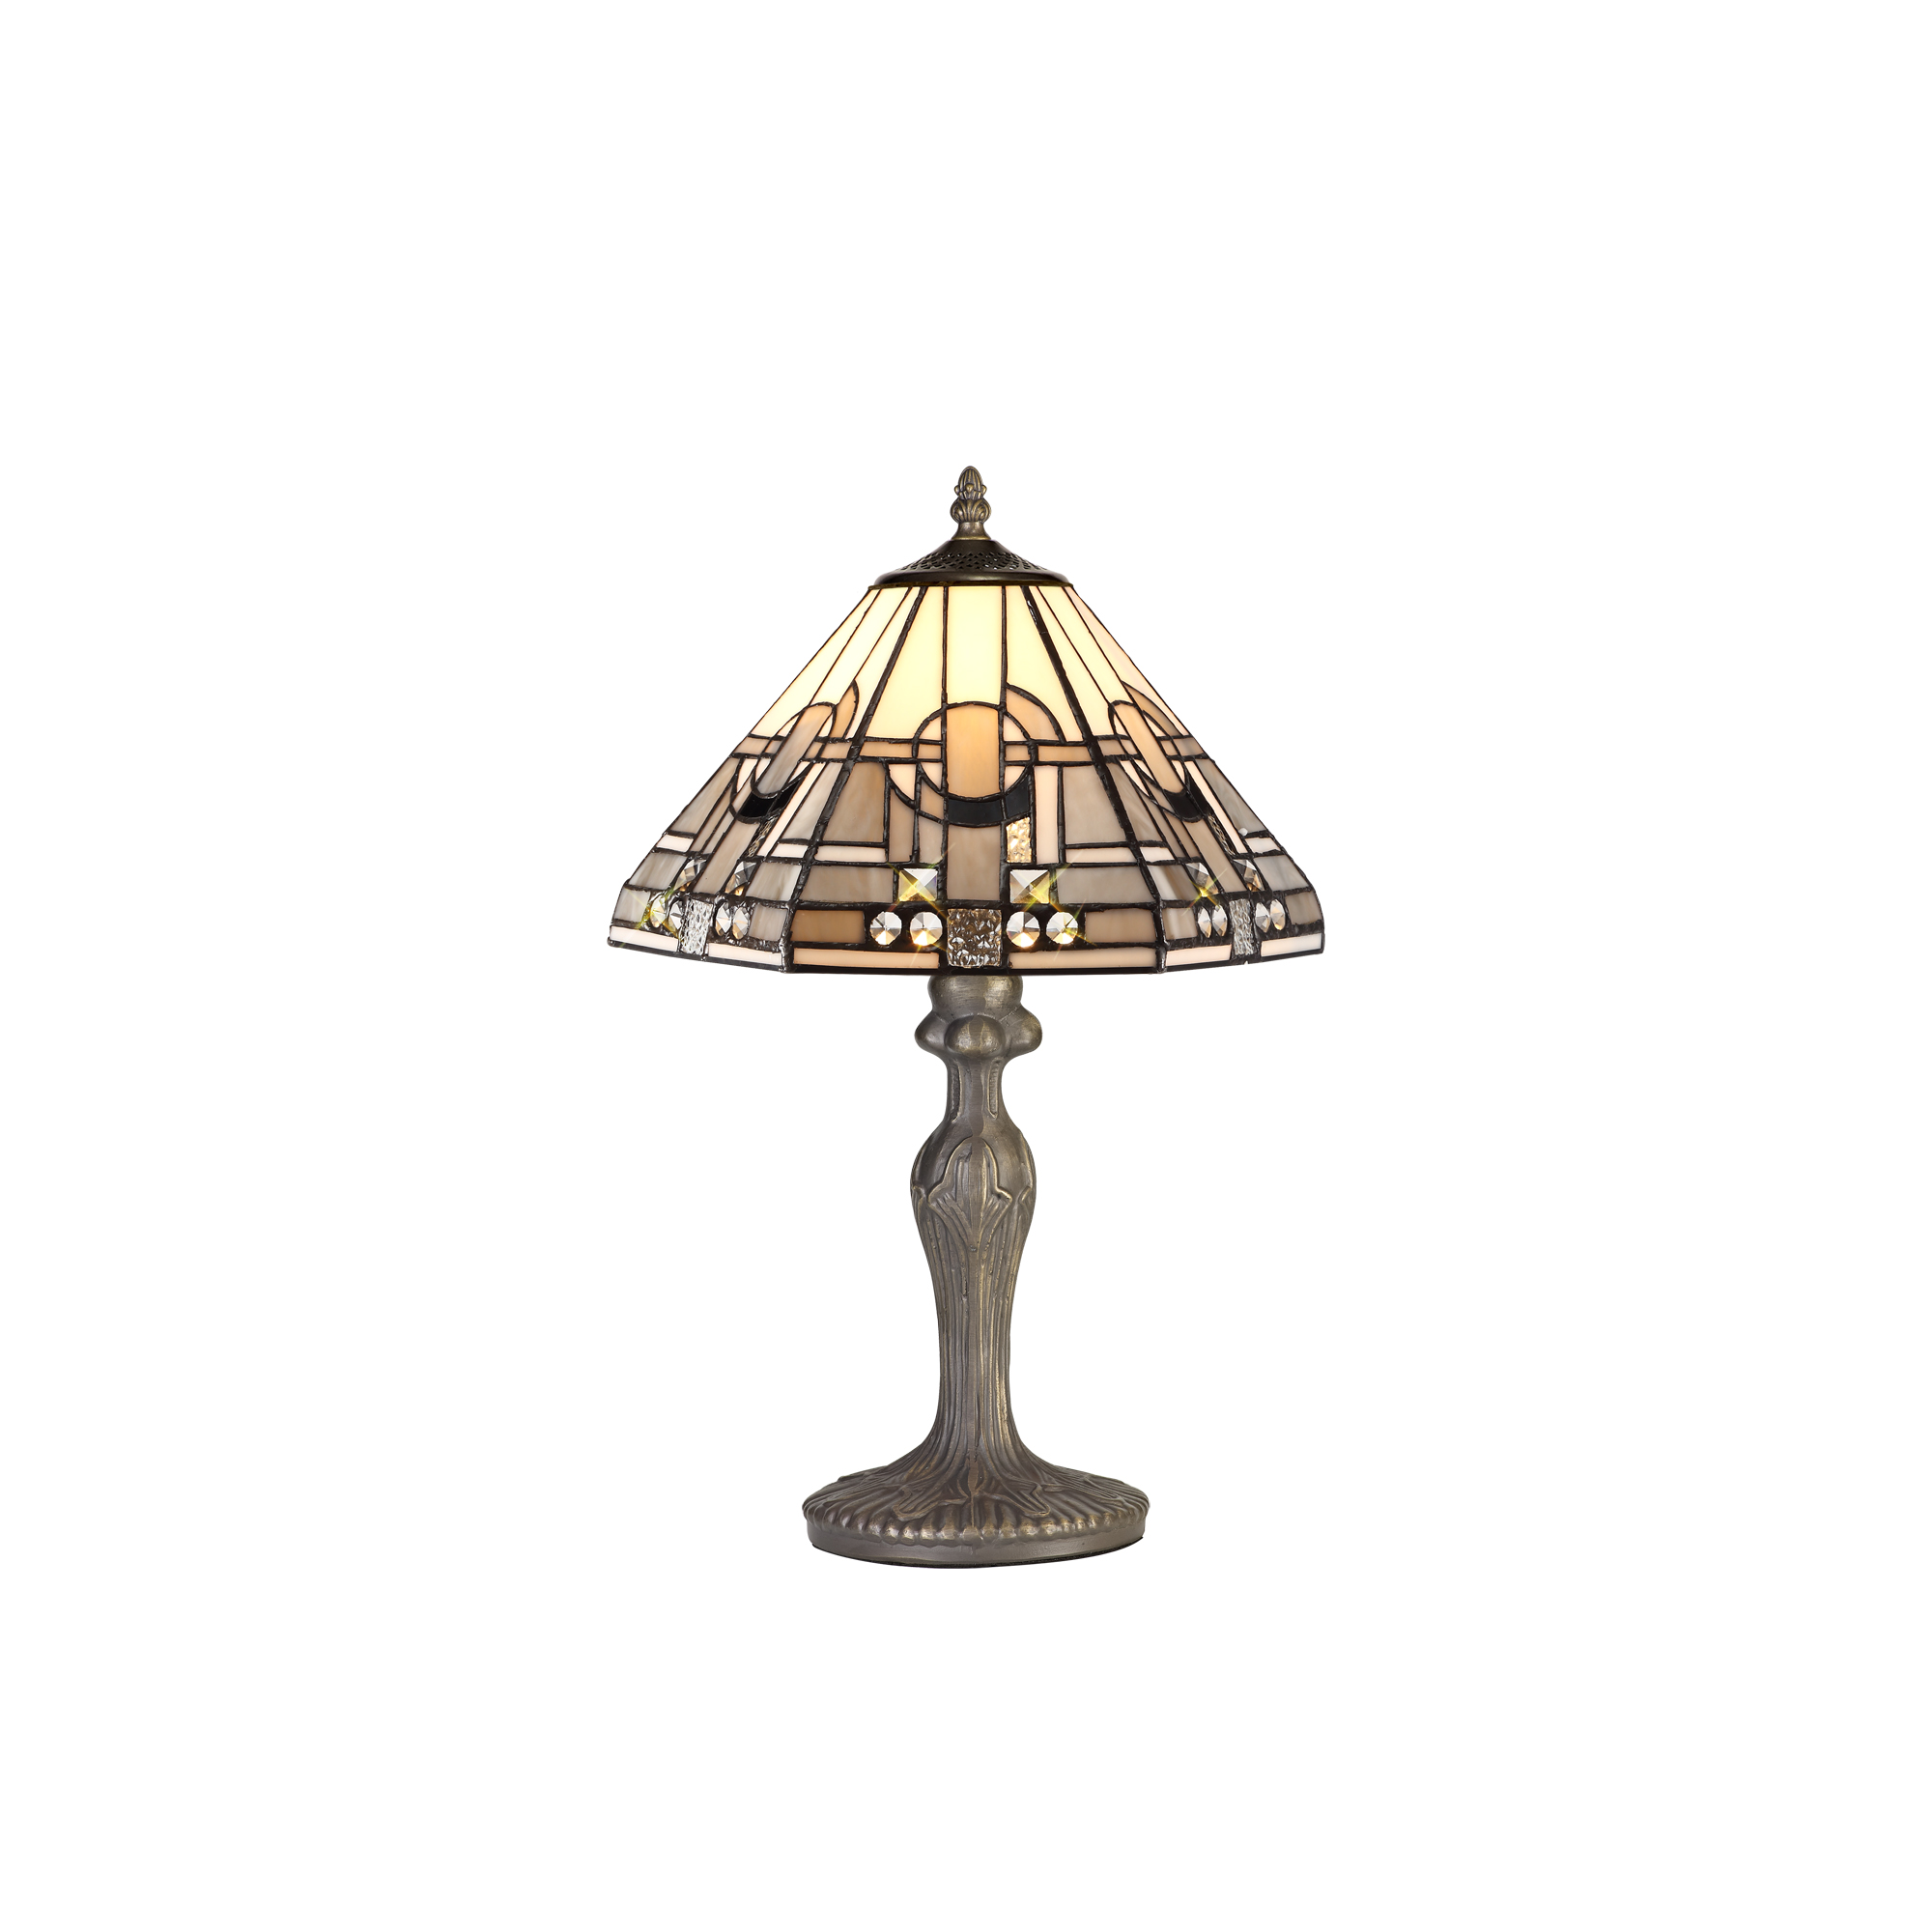 1 Light Curved Table Lamp E27 With 30cm Tiffany Shade, White/Grey/Black/Clear Crystal/Aged Antique Brass